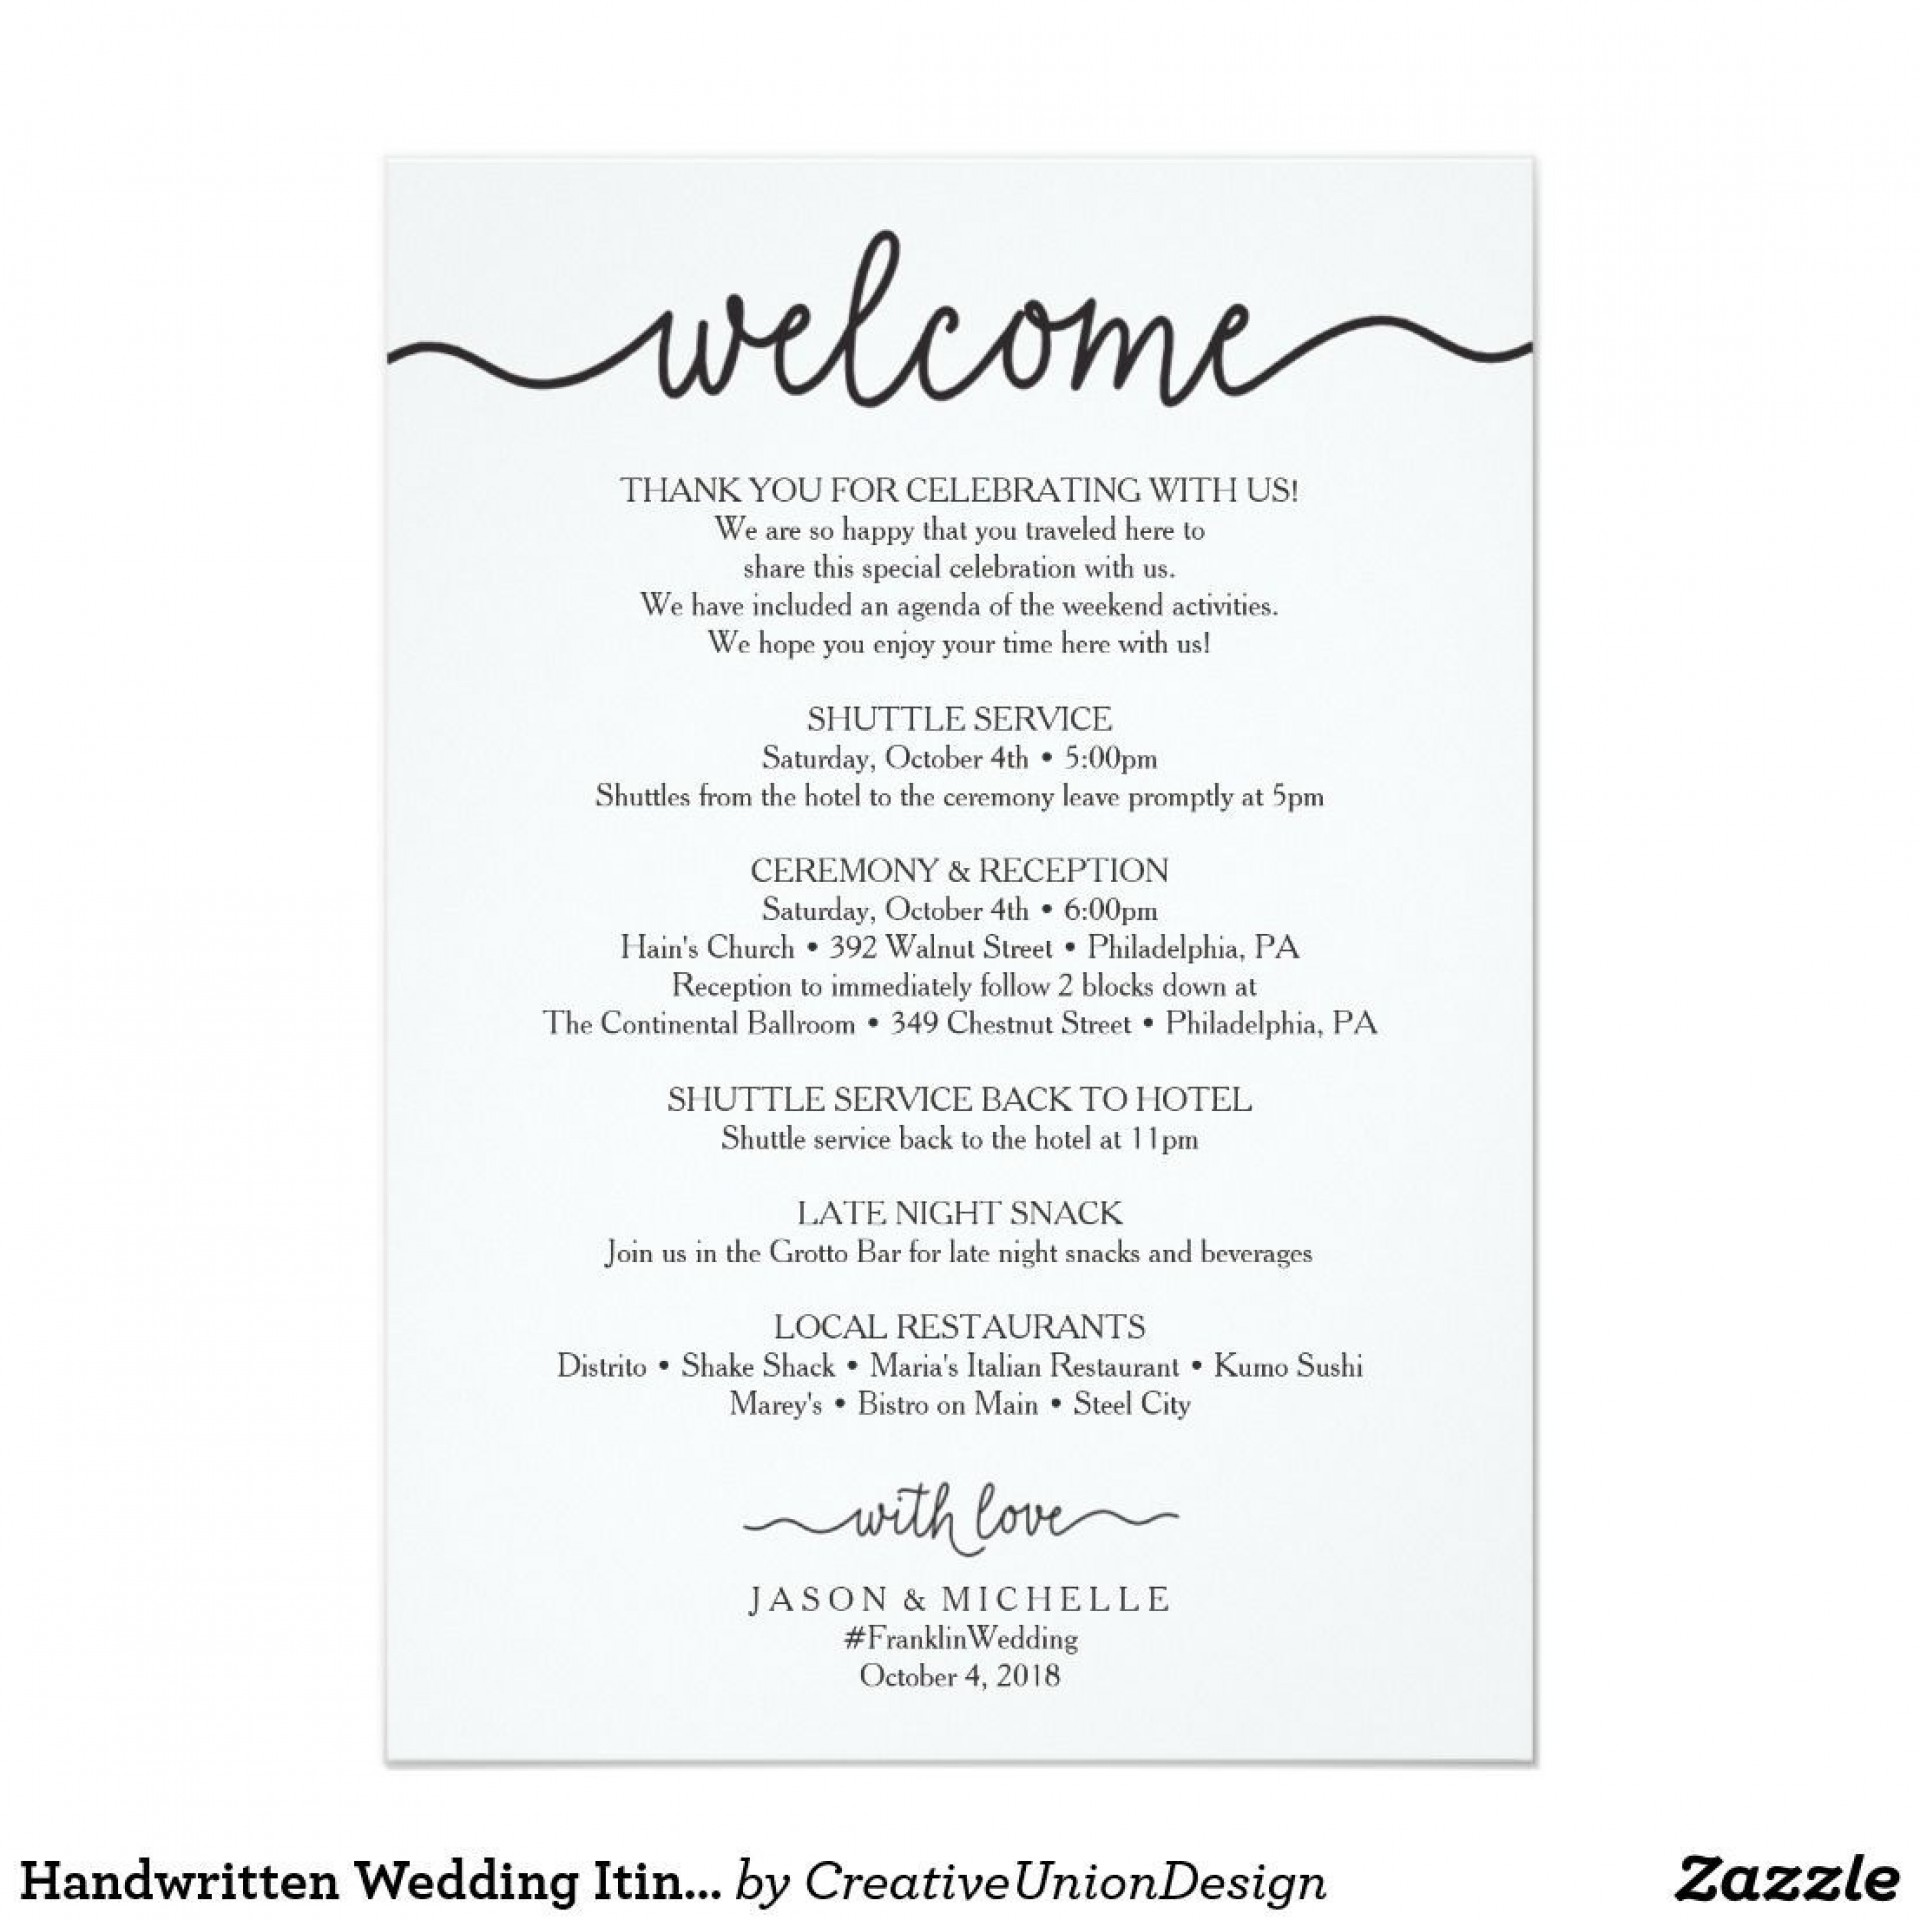 002 Outstanding Cruise Wedding Welcome Letter Template Photo 1920